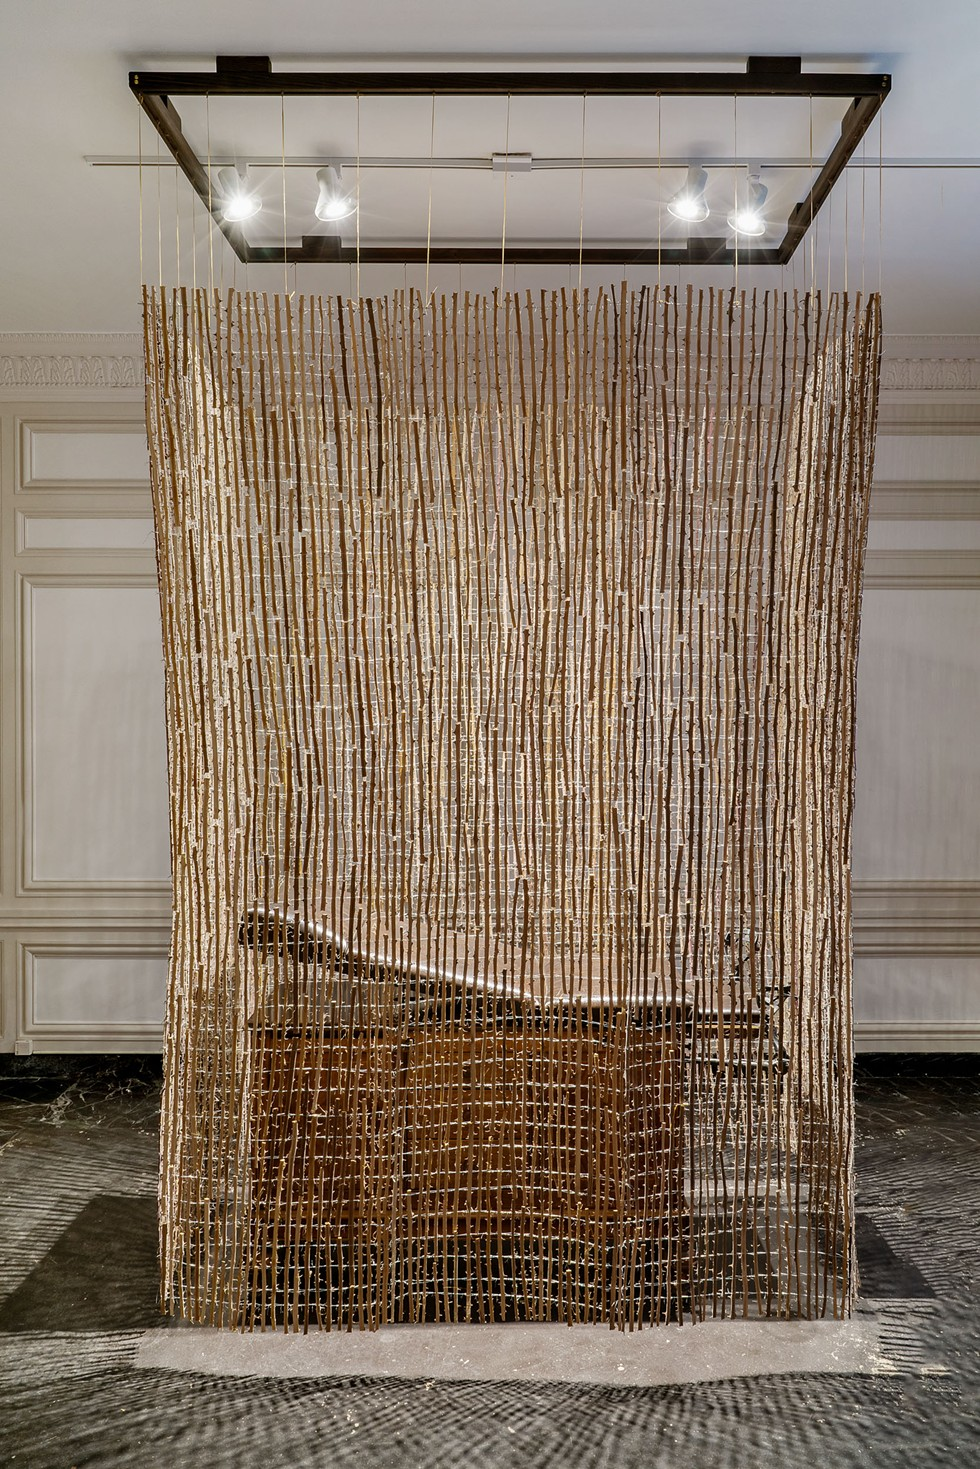 Selva Aparicio, Hysteria, 2020. Thorn branches woven with ligature and Hamilton obstetric table from 1931. - ROBERT CHASE HEISHMAN